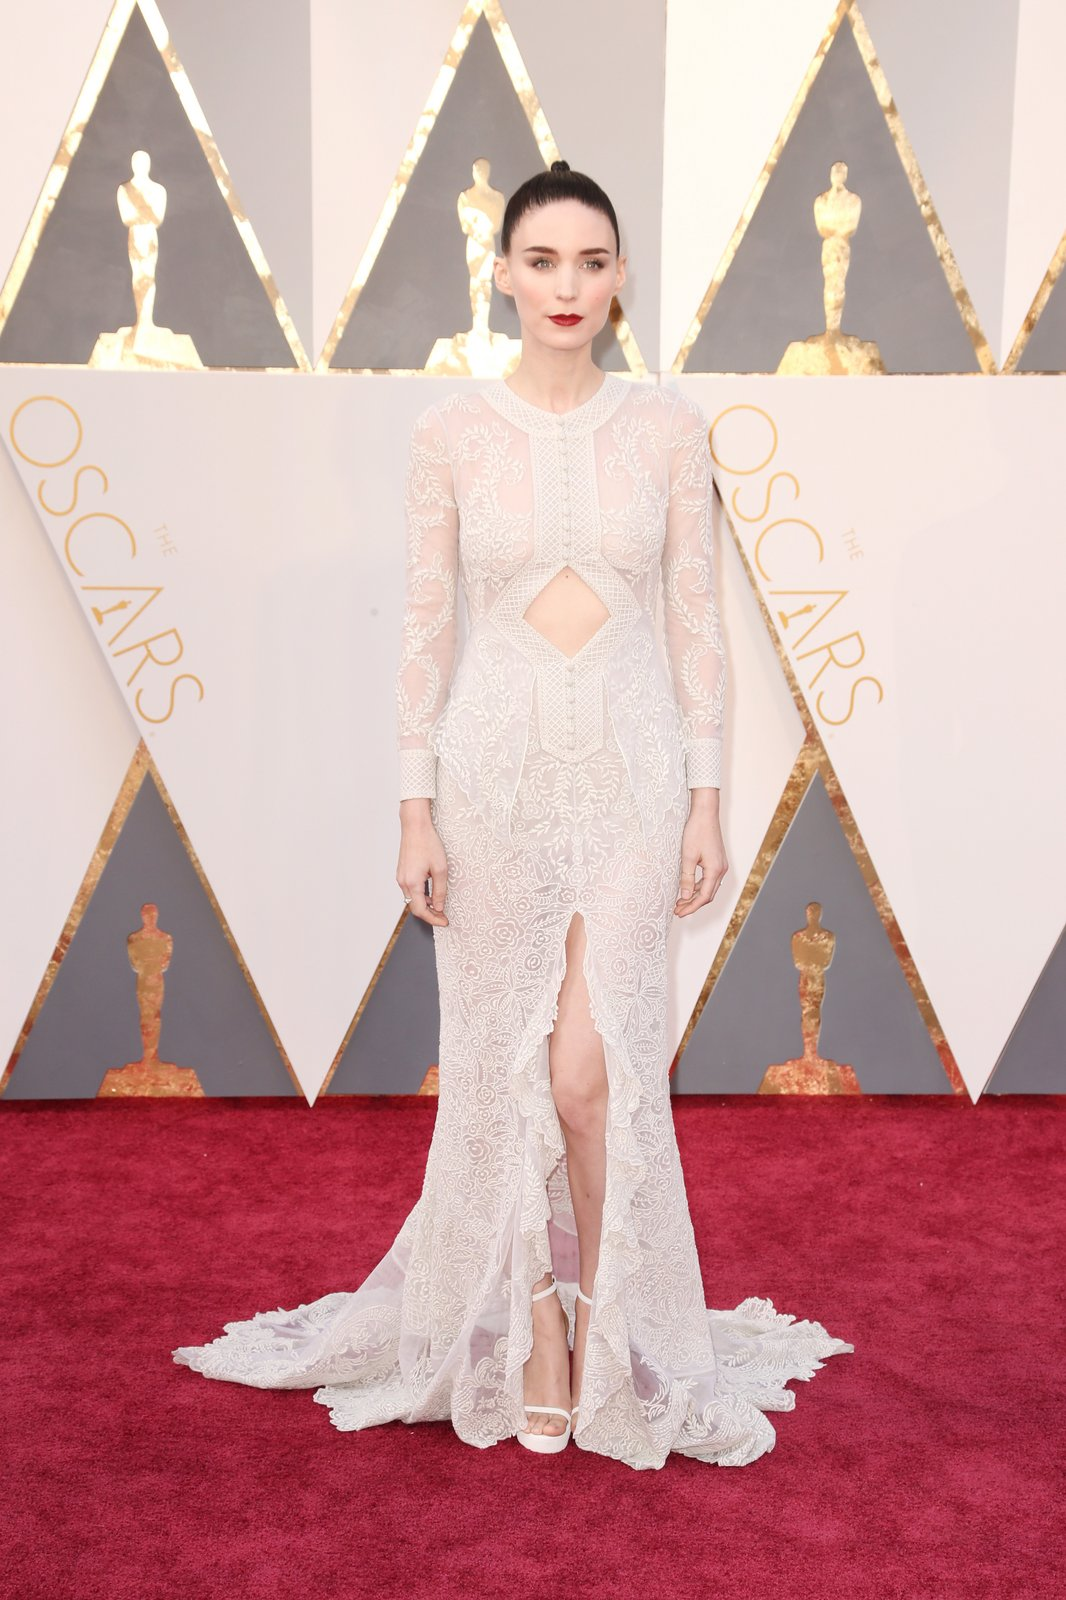 rooney-mara-oscars-red-carpet-2016.jpg